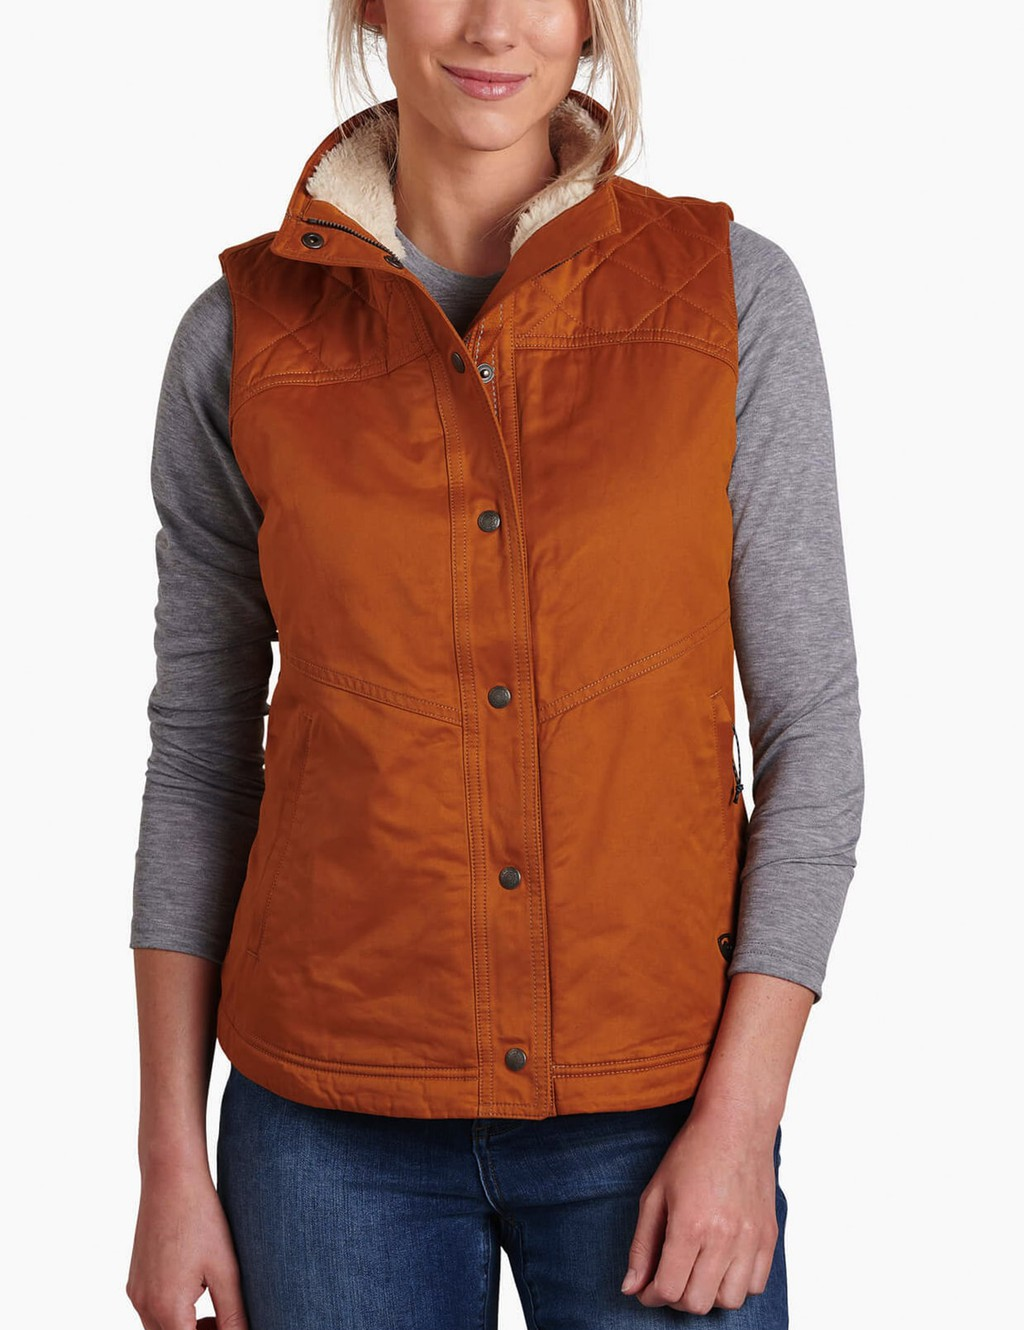 Shop Celeste Vest - KUHL Studio Photo Gifts for female travelers